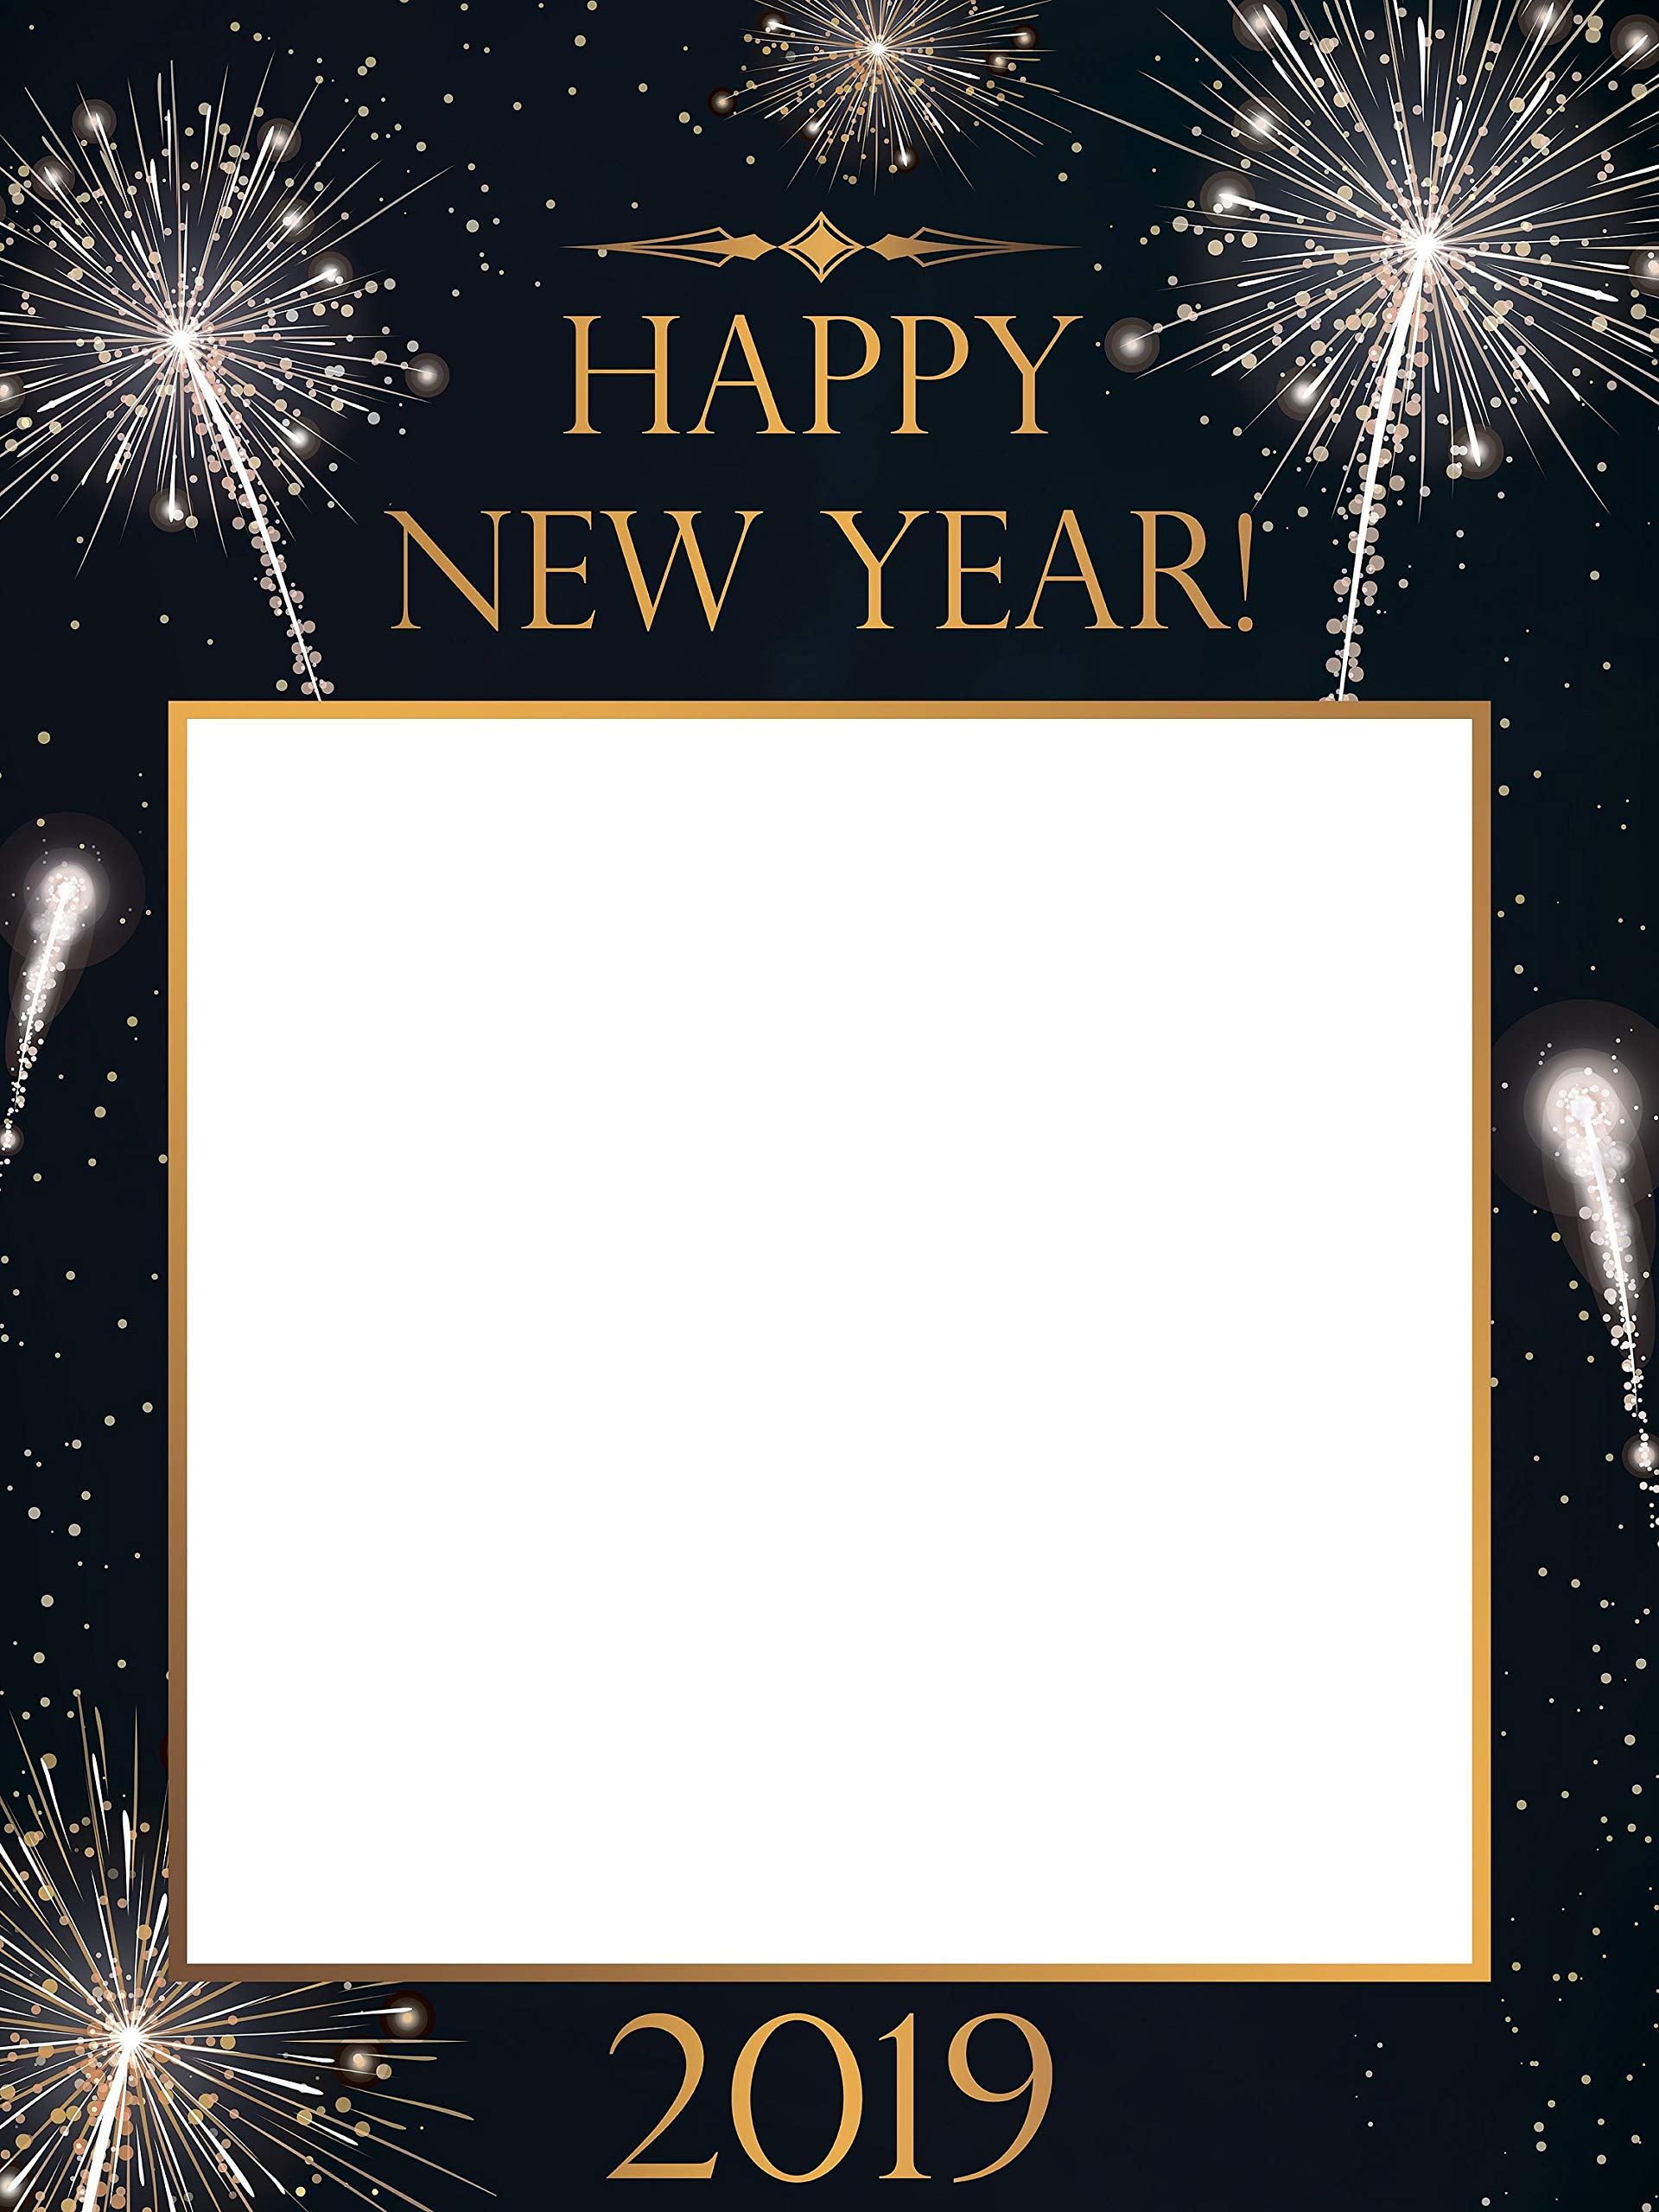 Large Custom Happy New Year Photo Booth Frame New Year Eve Holiday